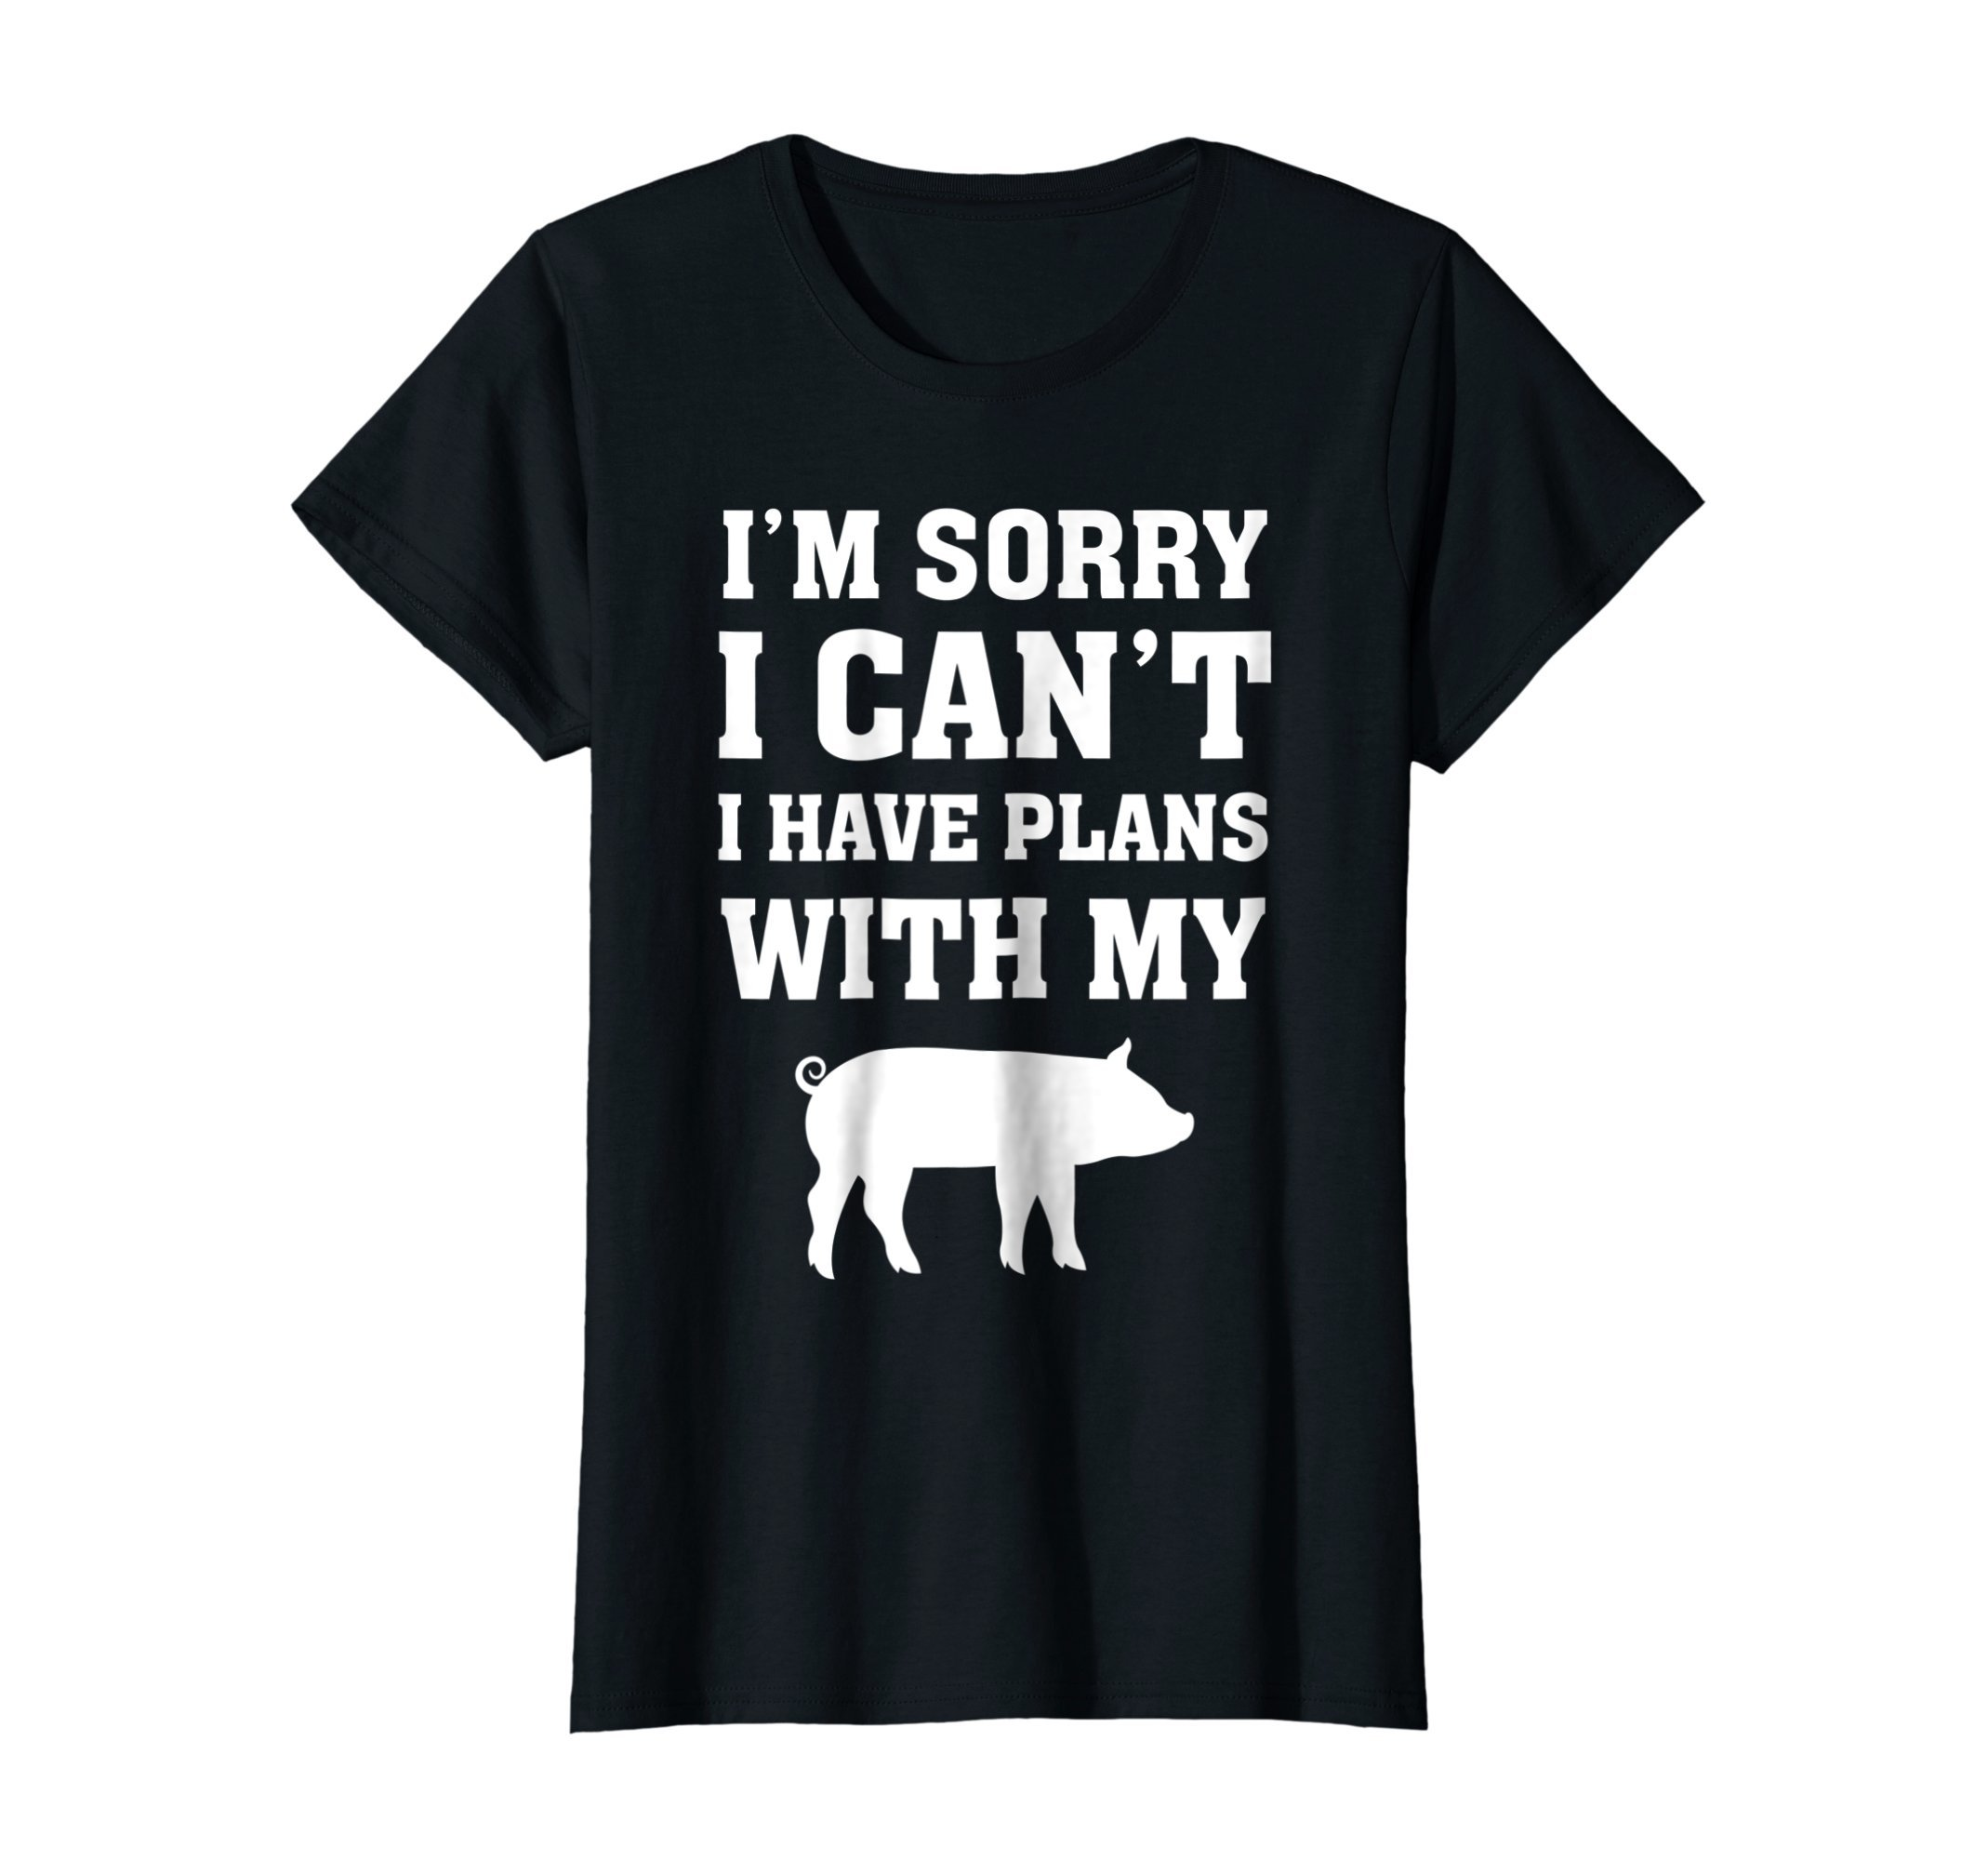 Womens I'm Sorry I Can't I Have Plans With My Pig T-Shirt XL Black